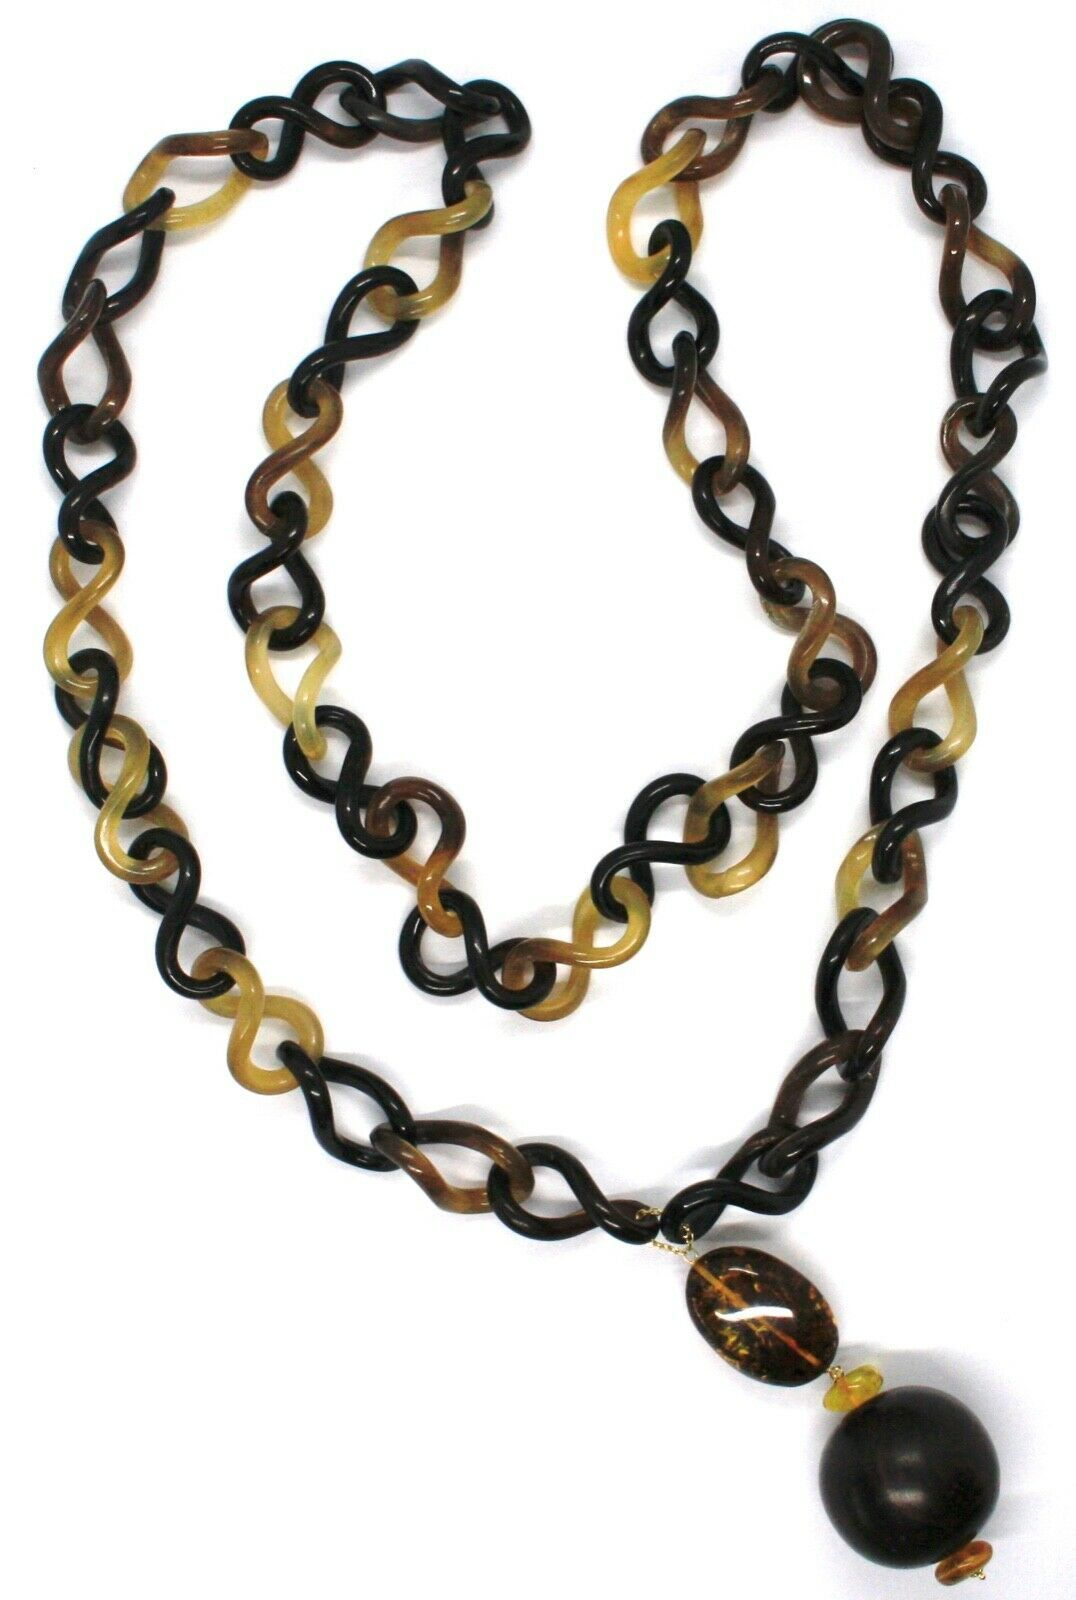 18K YELLOW GOLD LONG NECKLACE, HORN, AMBER, EBONY, 1 METER, 39.4 INCHES